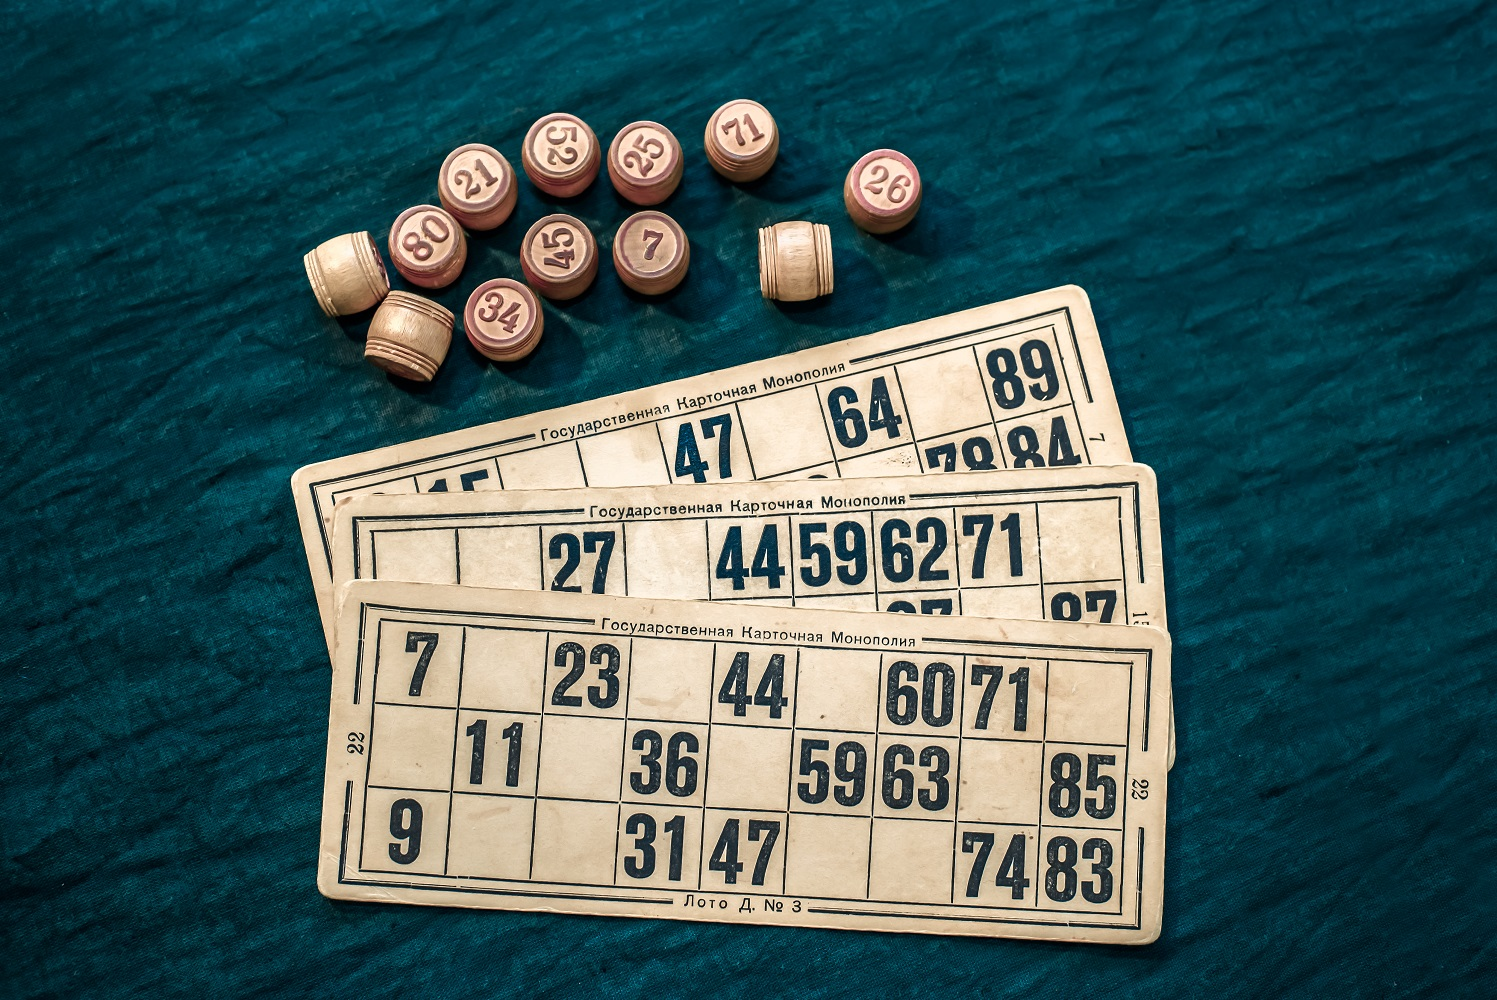 The game of bingo consists of cards and barrels with numbers on a green background, the game russian lotto